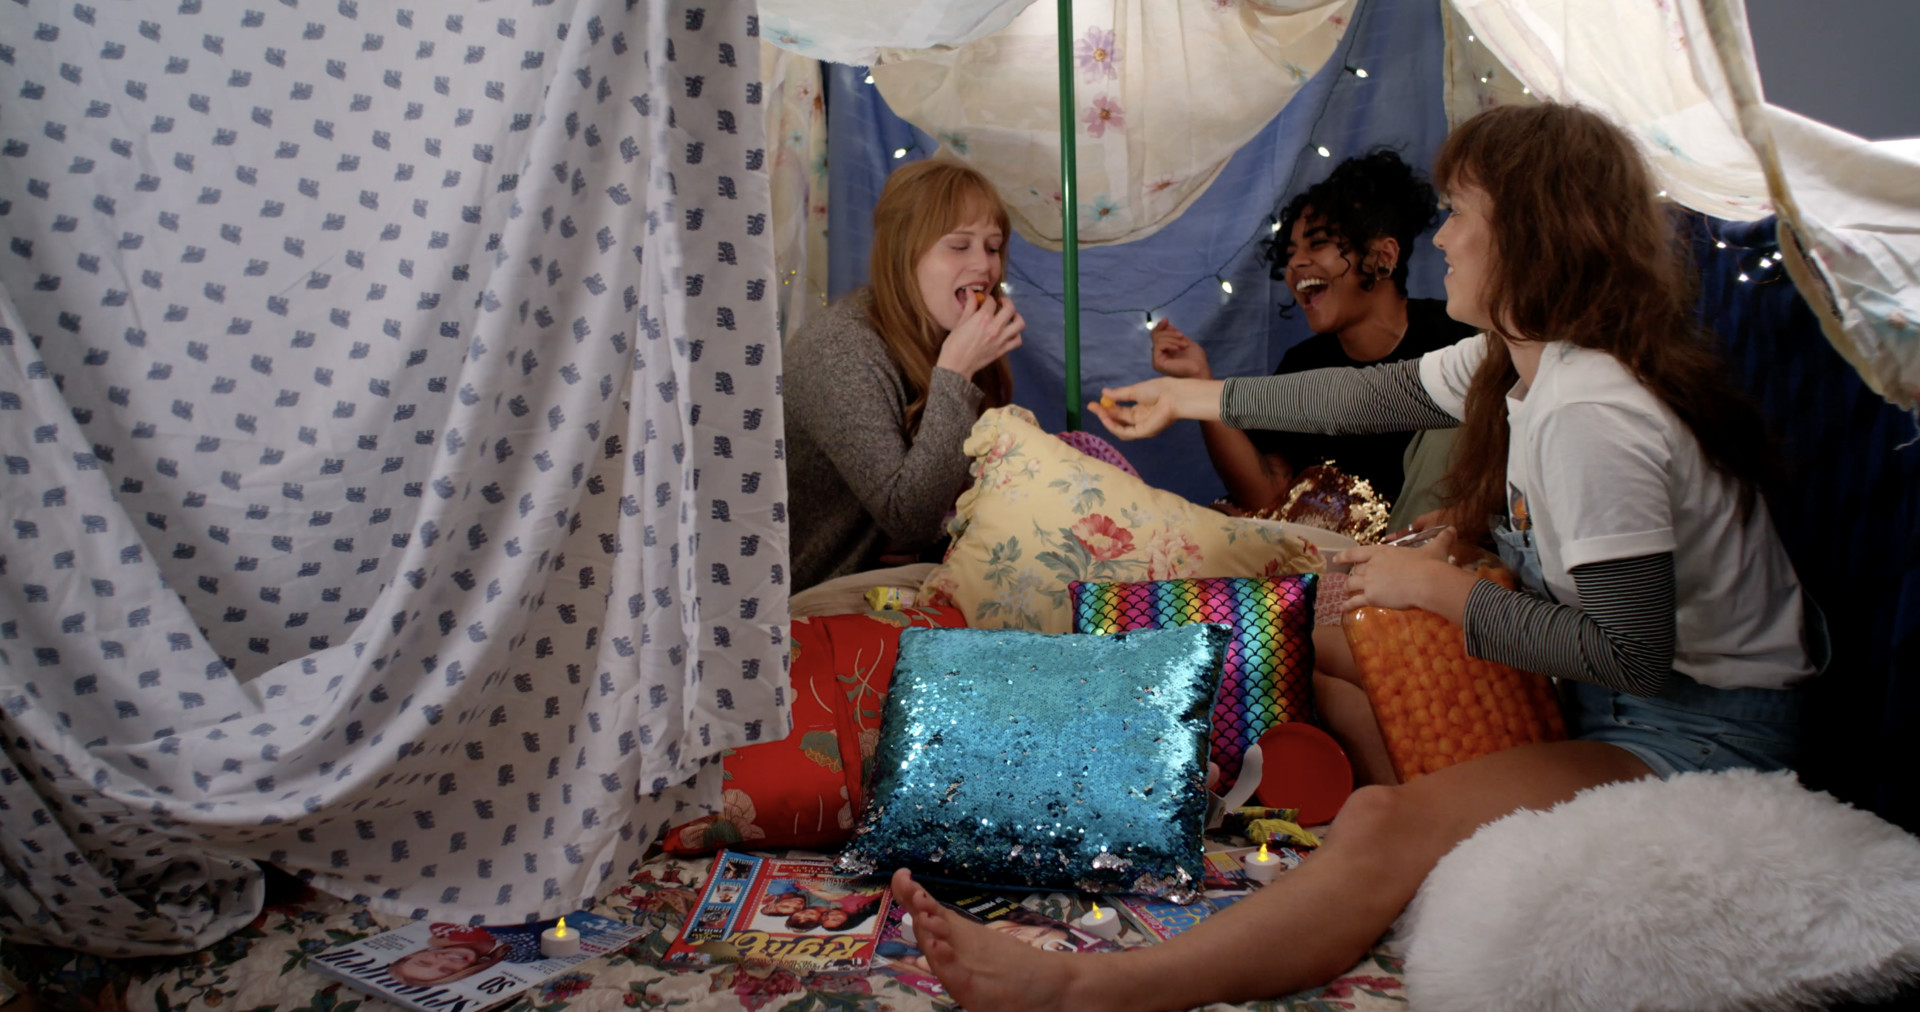 Three friends lounge in a blanket fort chatting